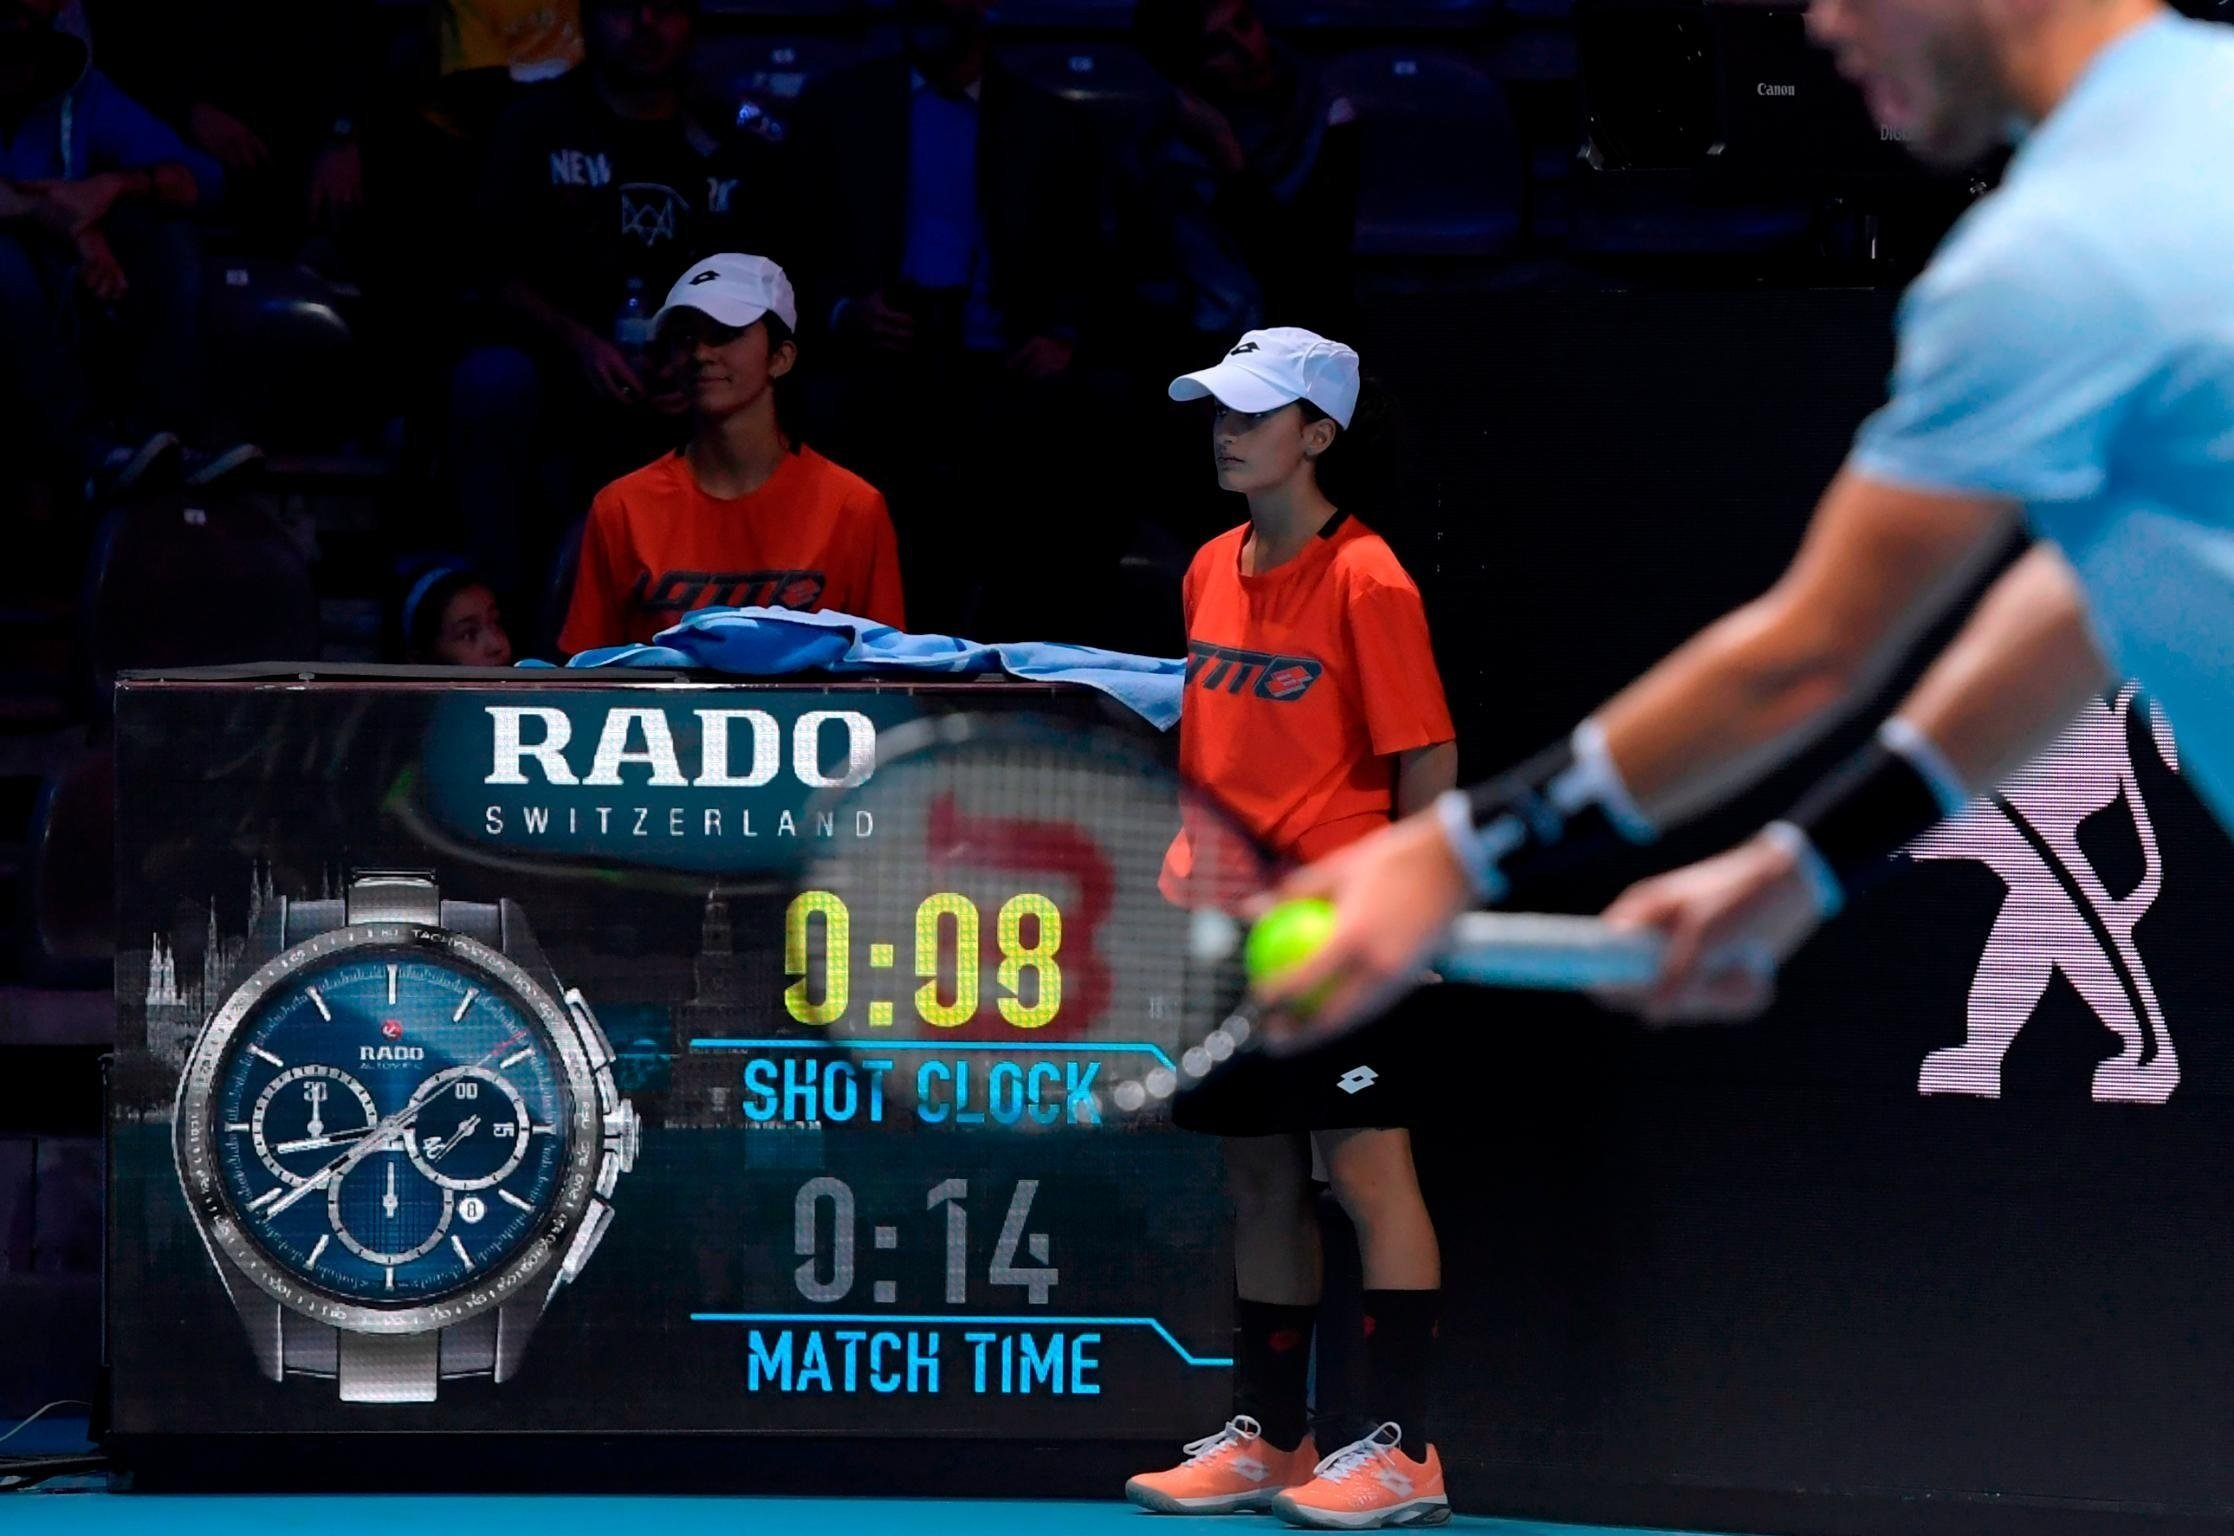 Rule changes -- such as towel racks, shorter sets and reduced warm-ups -- and other innovations such as a 25-second shot clock will be further trialed at November's Next Gen ATP Finals and could be introduced on the men's tour as early as 2019.